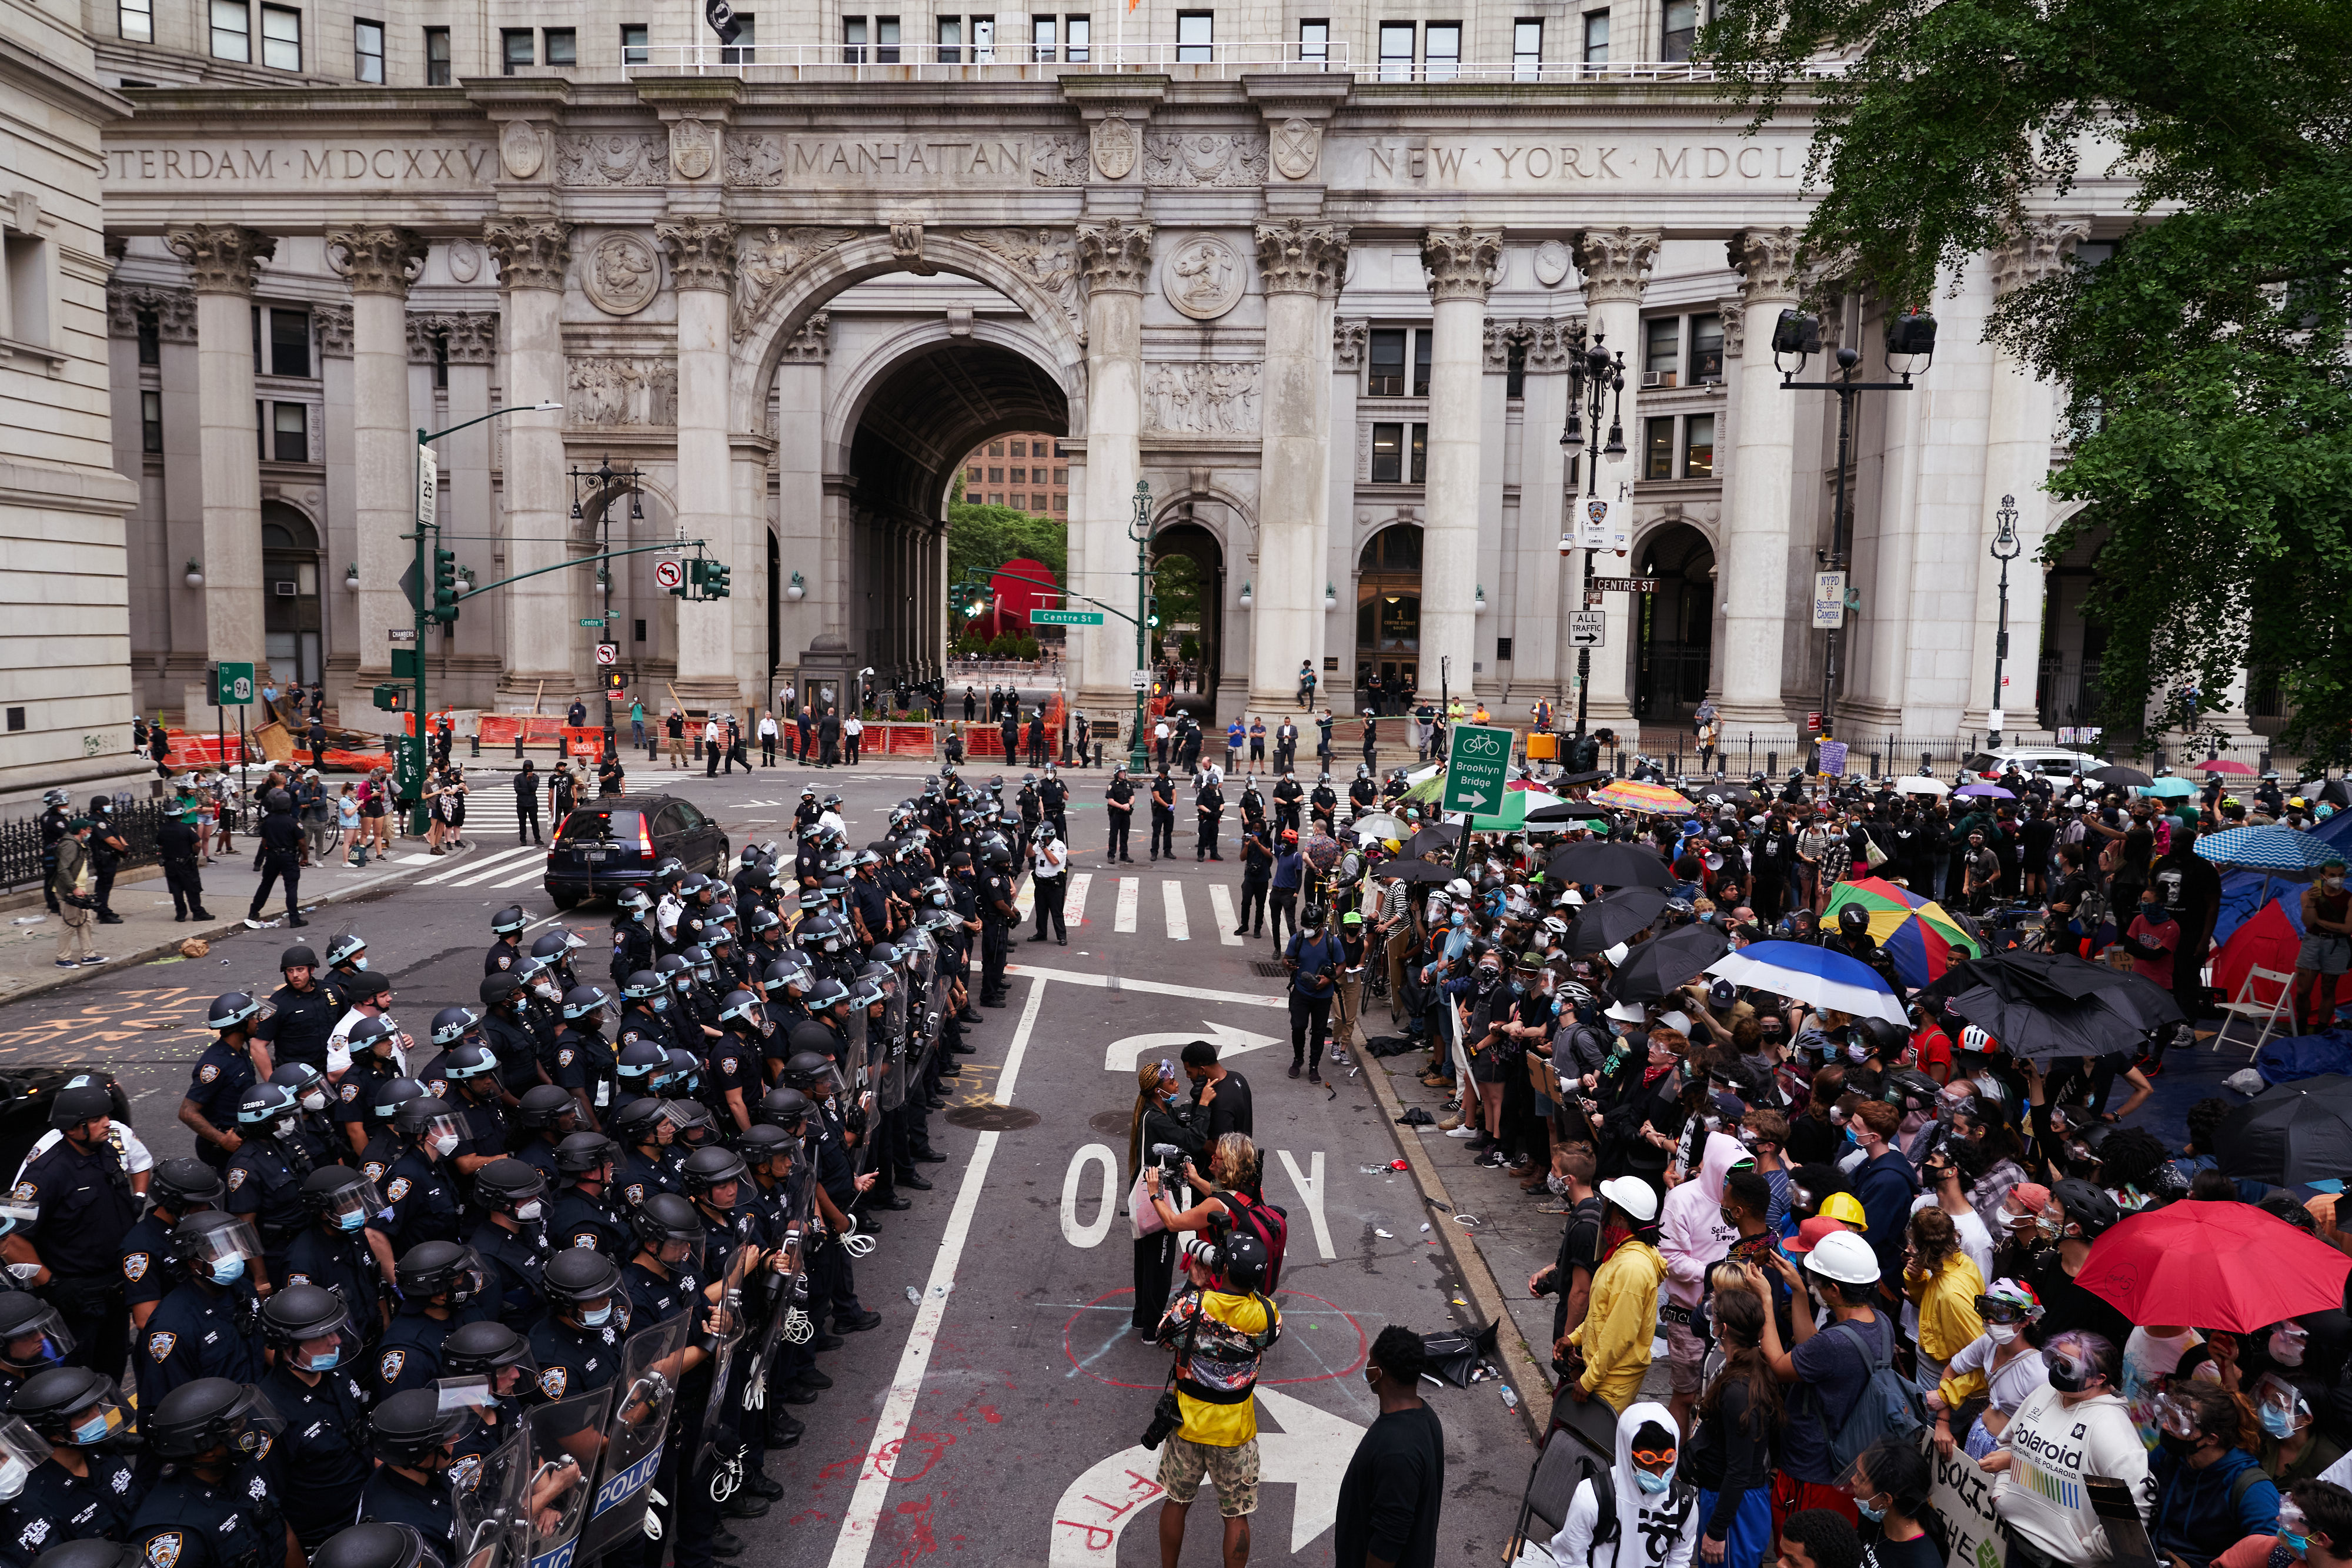 City Hall Protestors clash with NYPD